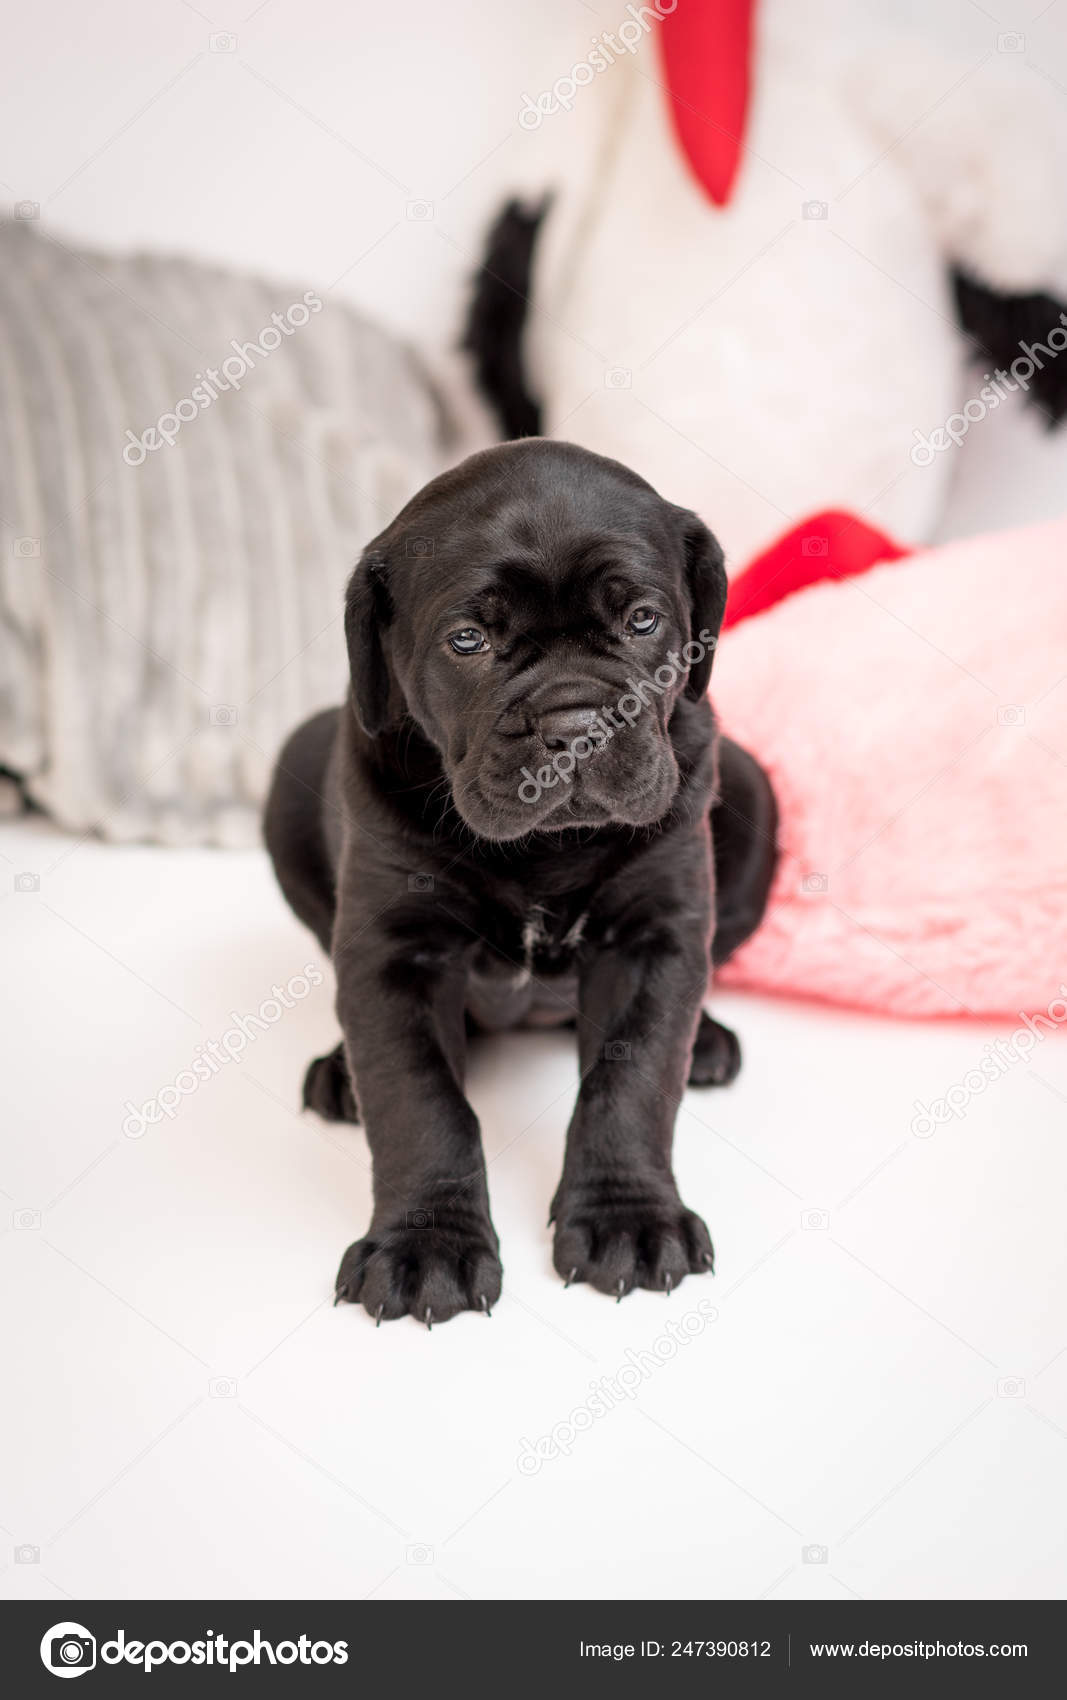 Puppy Dog Breed Cane Corso Sitting Position Black Color White Stock Photo C Bondarjuri232 Gmail Com 247390812